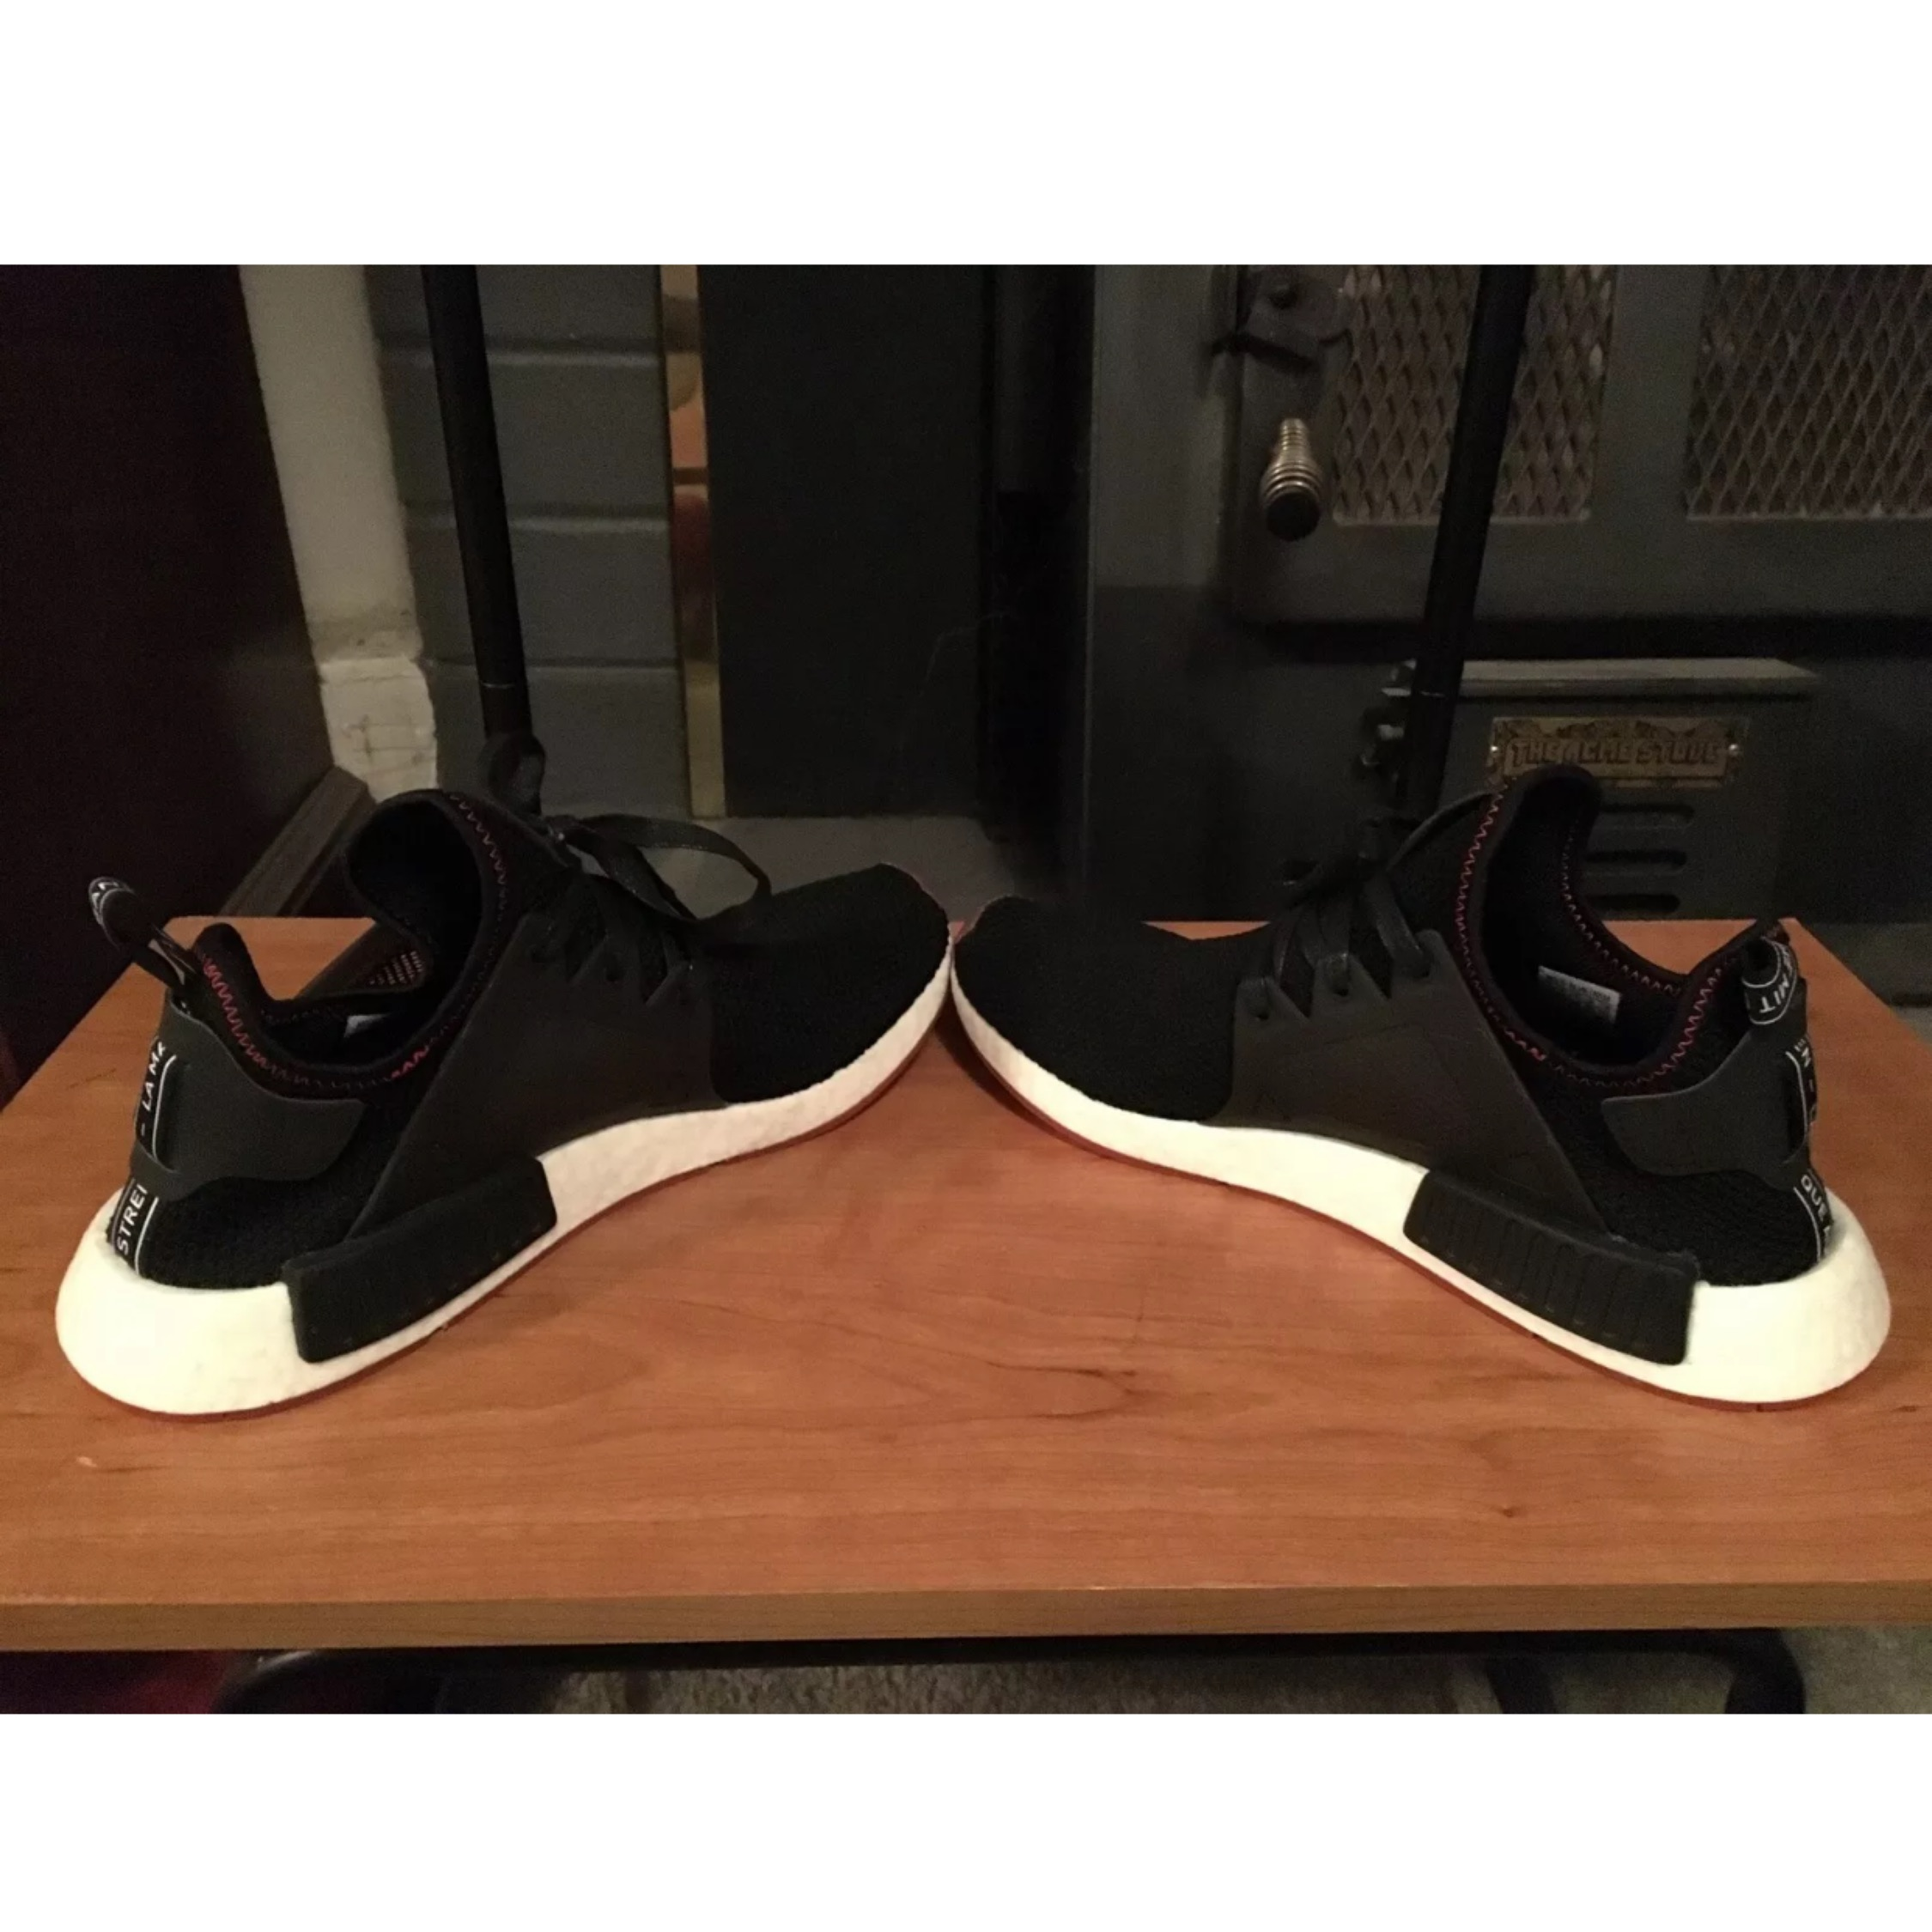 100% authentic be127 cd937 Adidas Nmd Xr1 Bred Men's Us 10.5 In Original Box